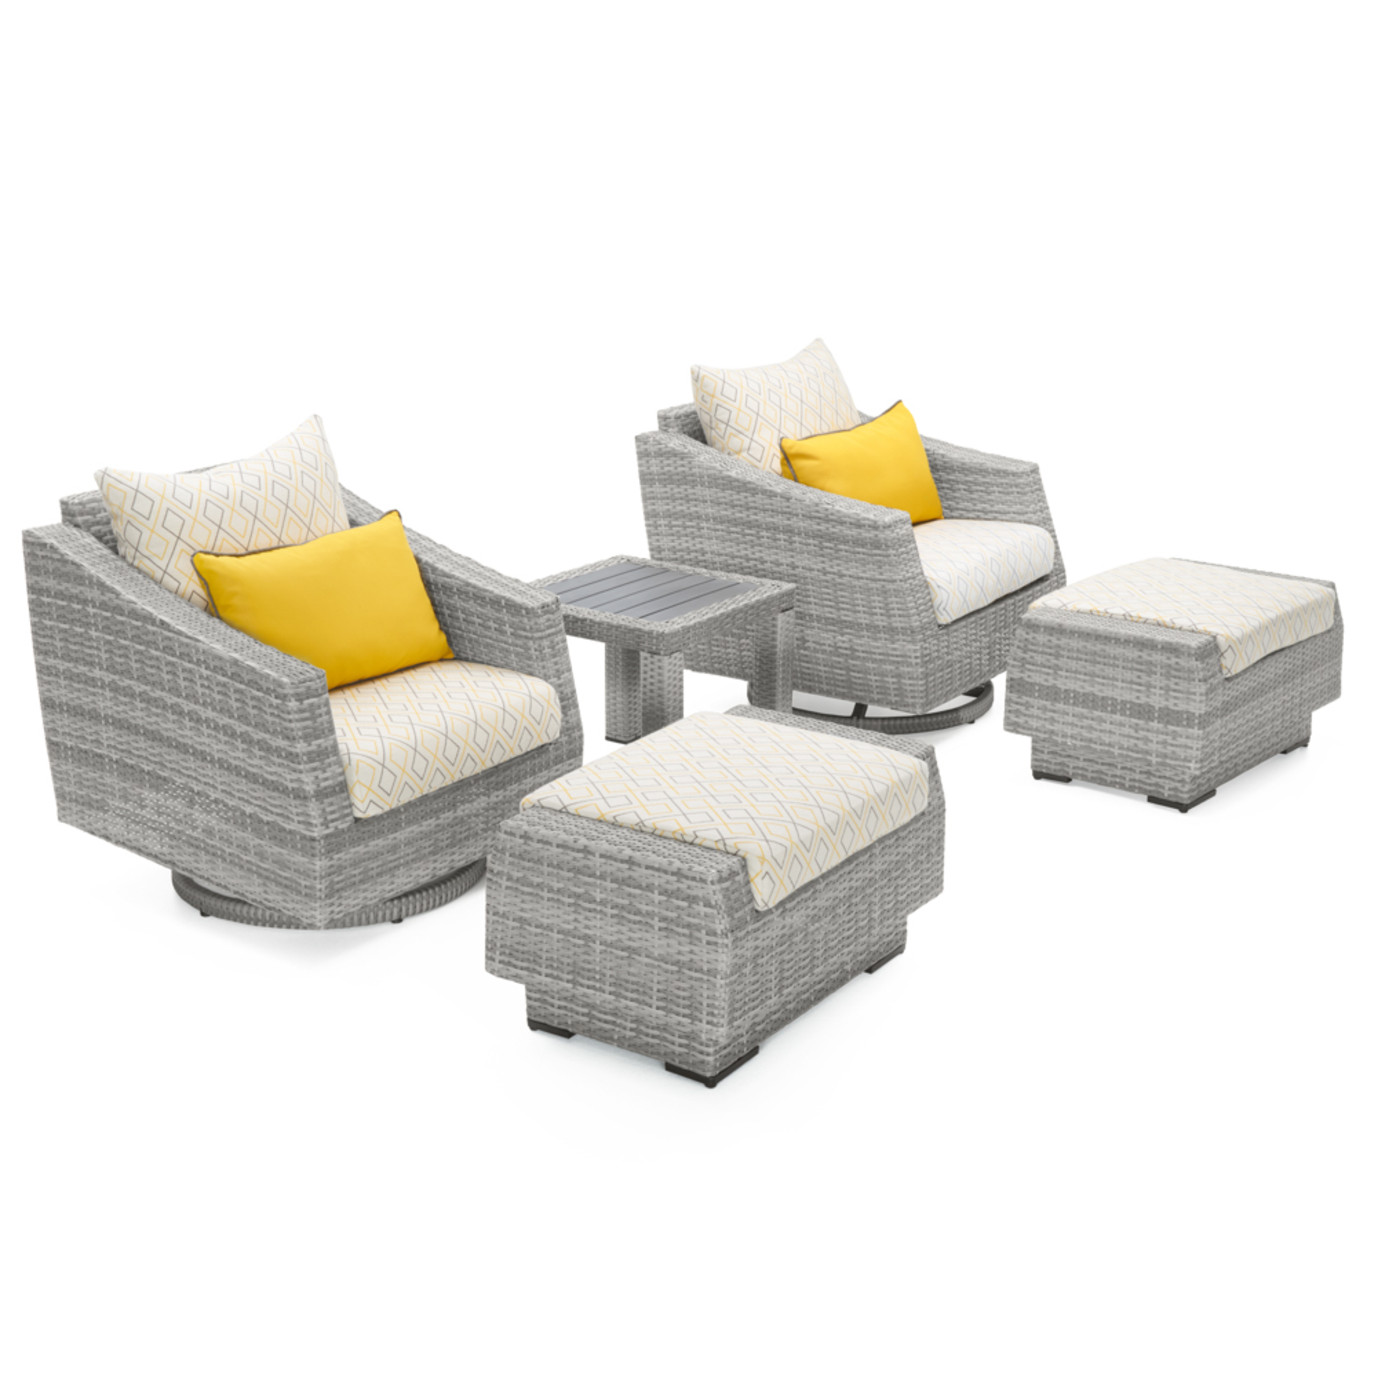 Cannes™ Deluxe 5pc Motion Club & Ottoman Set - Sunflower Yellow